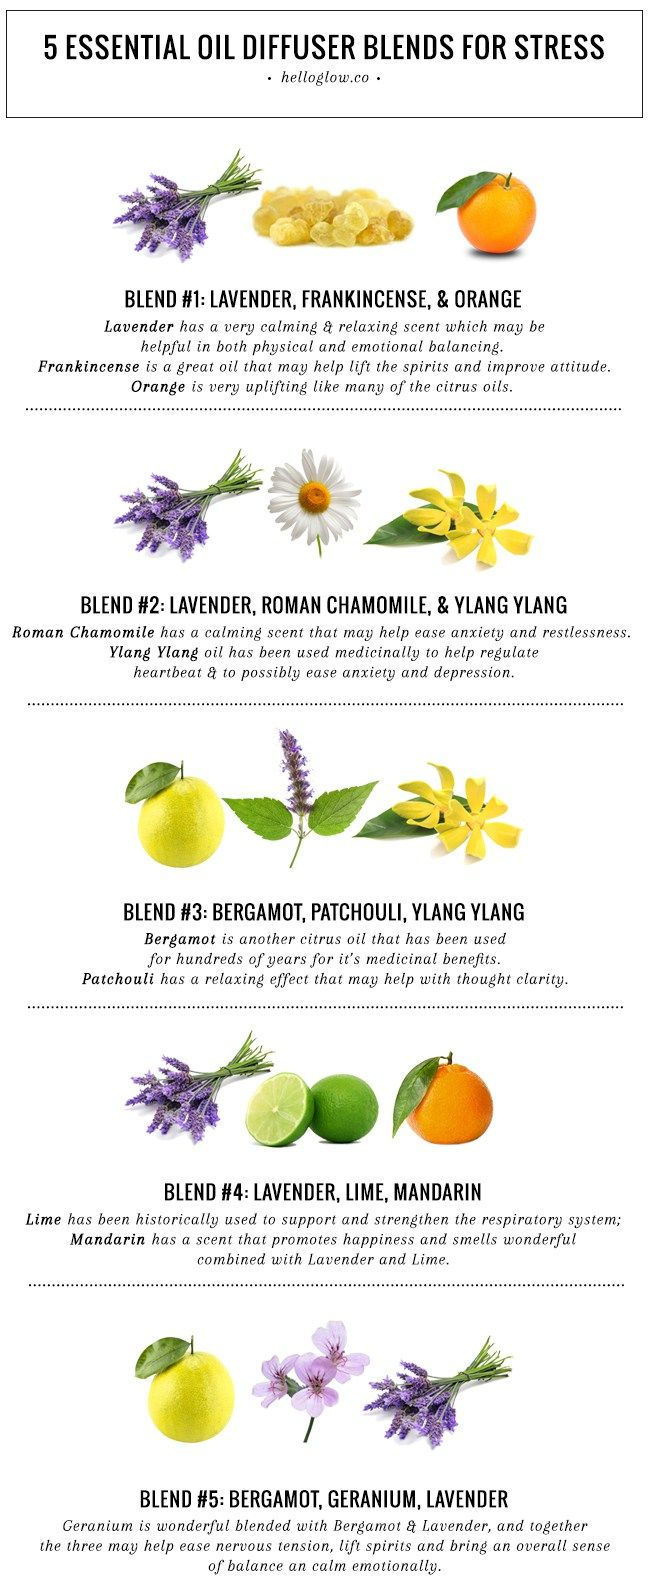 5 Essential Oil Diffuser Blends For Stress With Images